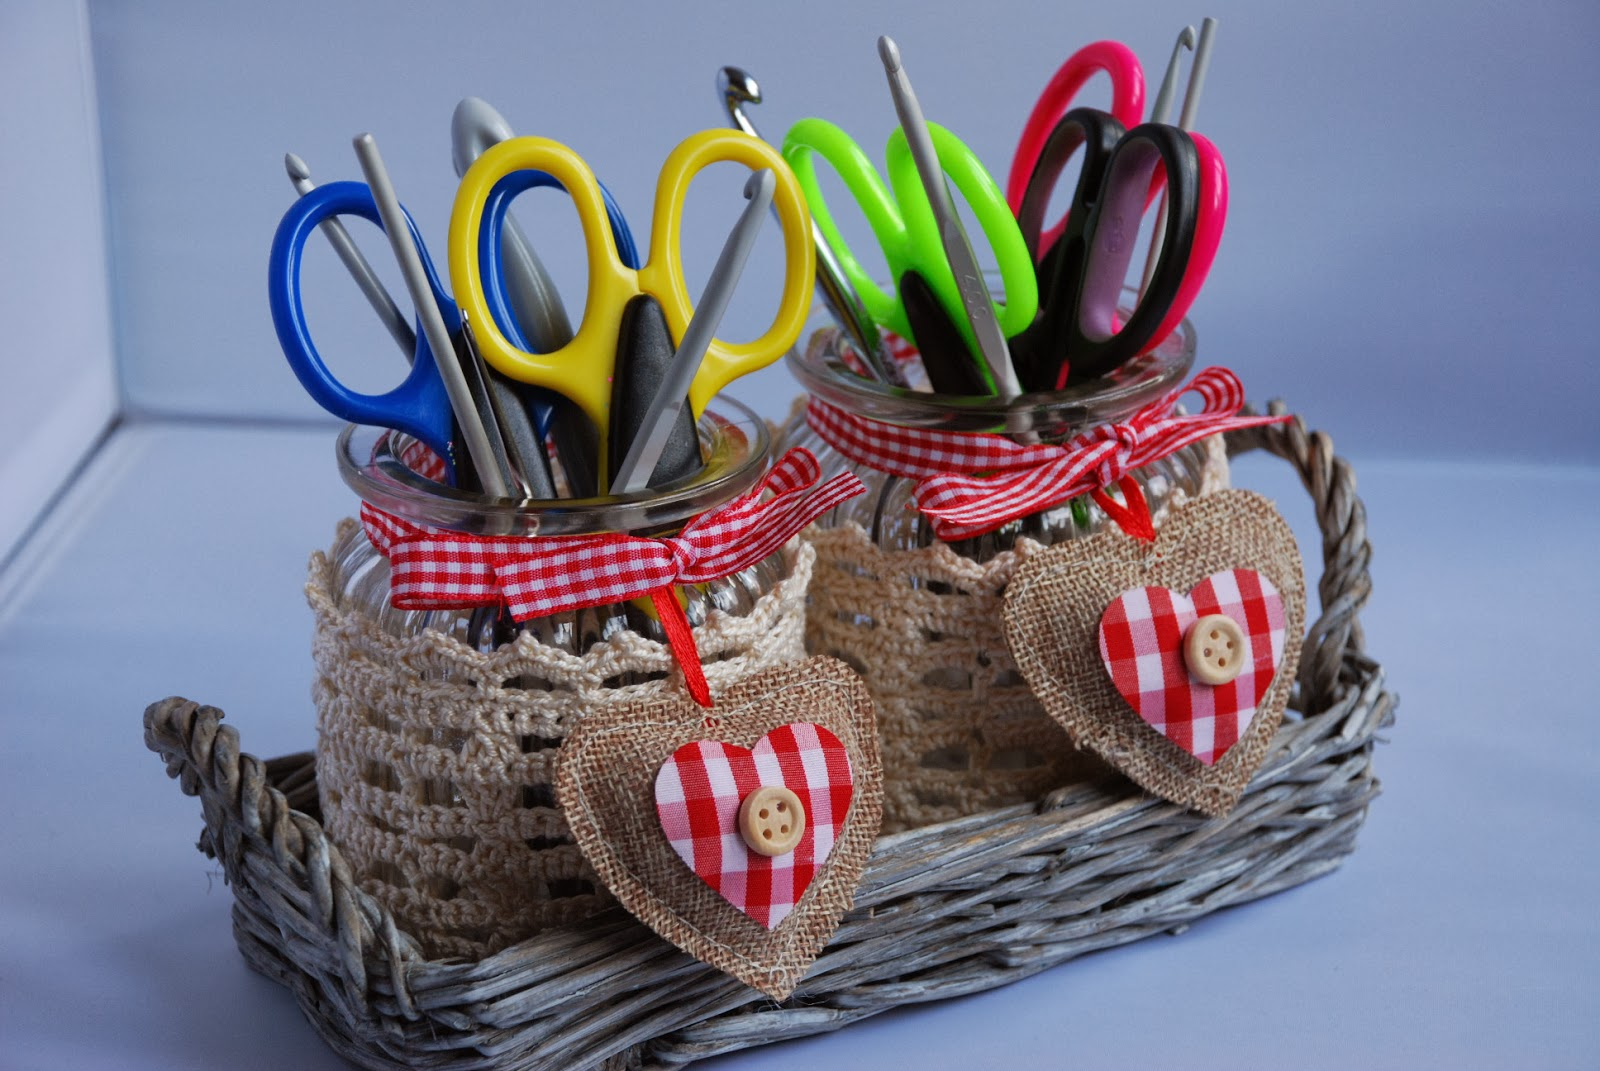 image of crochet cosy jars with crochet hooks and scissors inside